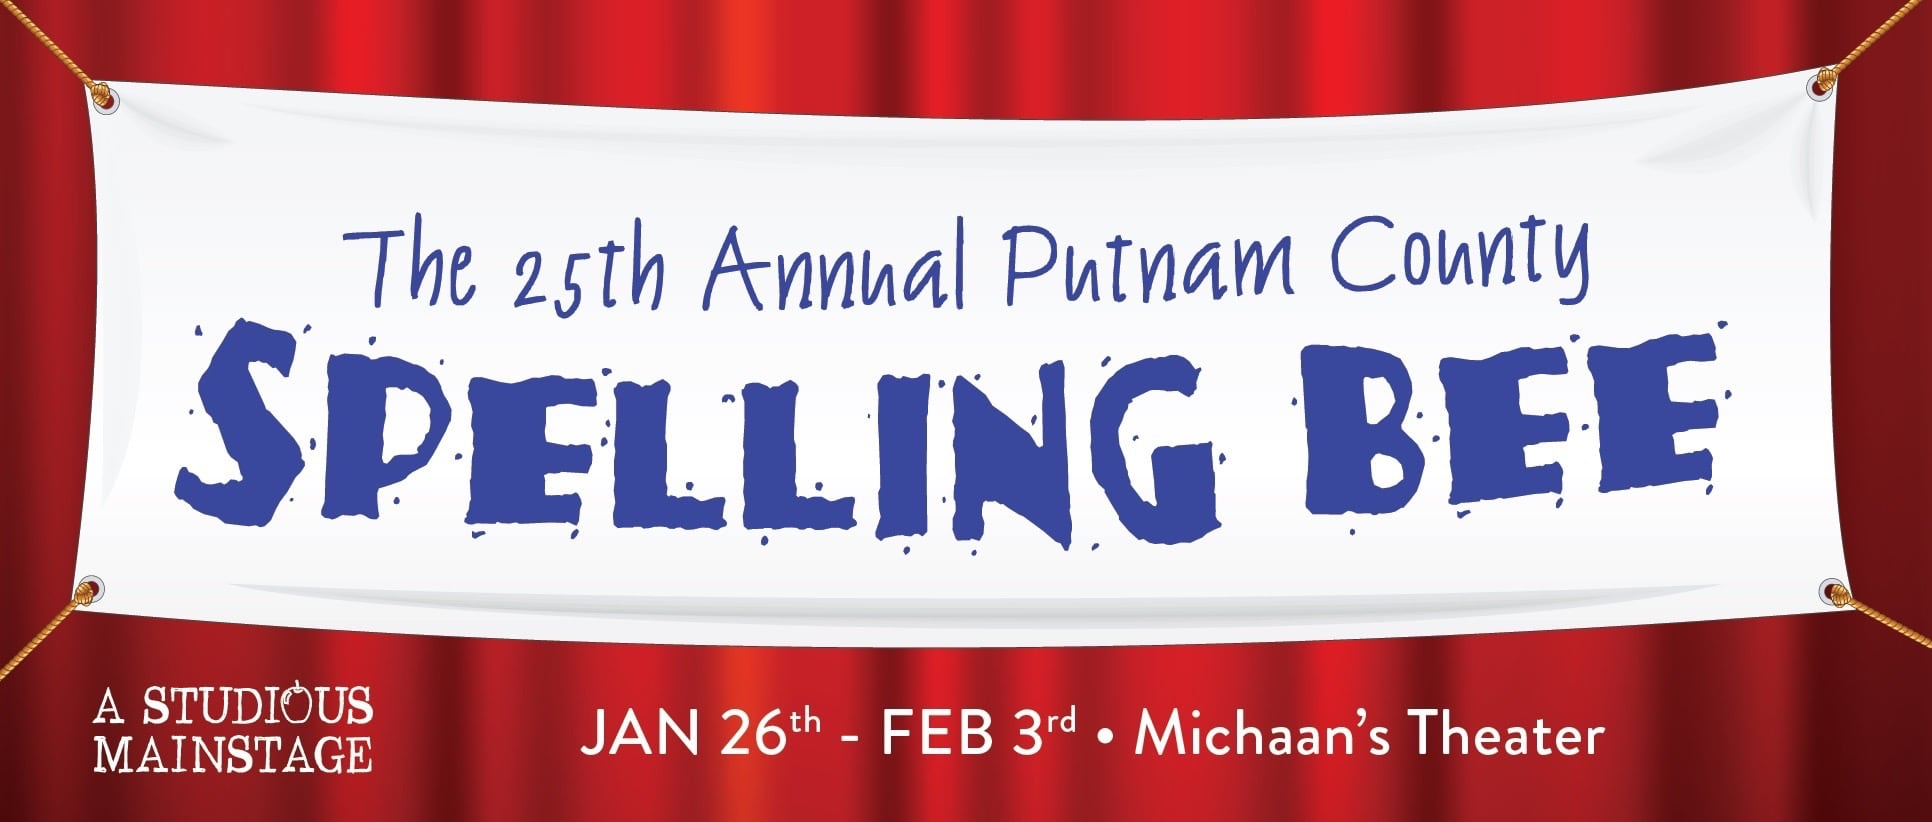 Tomorrow Youth Rep Banner image, from The 25th Annual Putnum County Spelling Bee, 2018